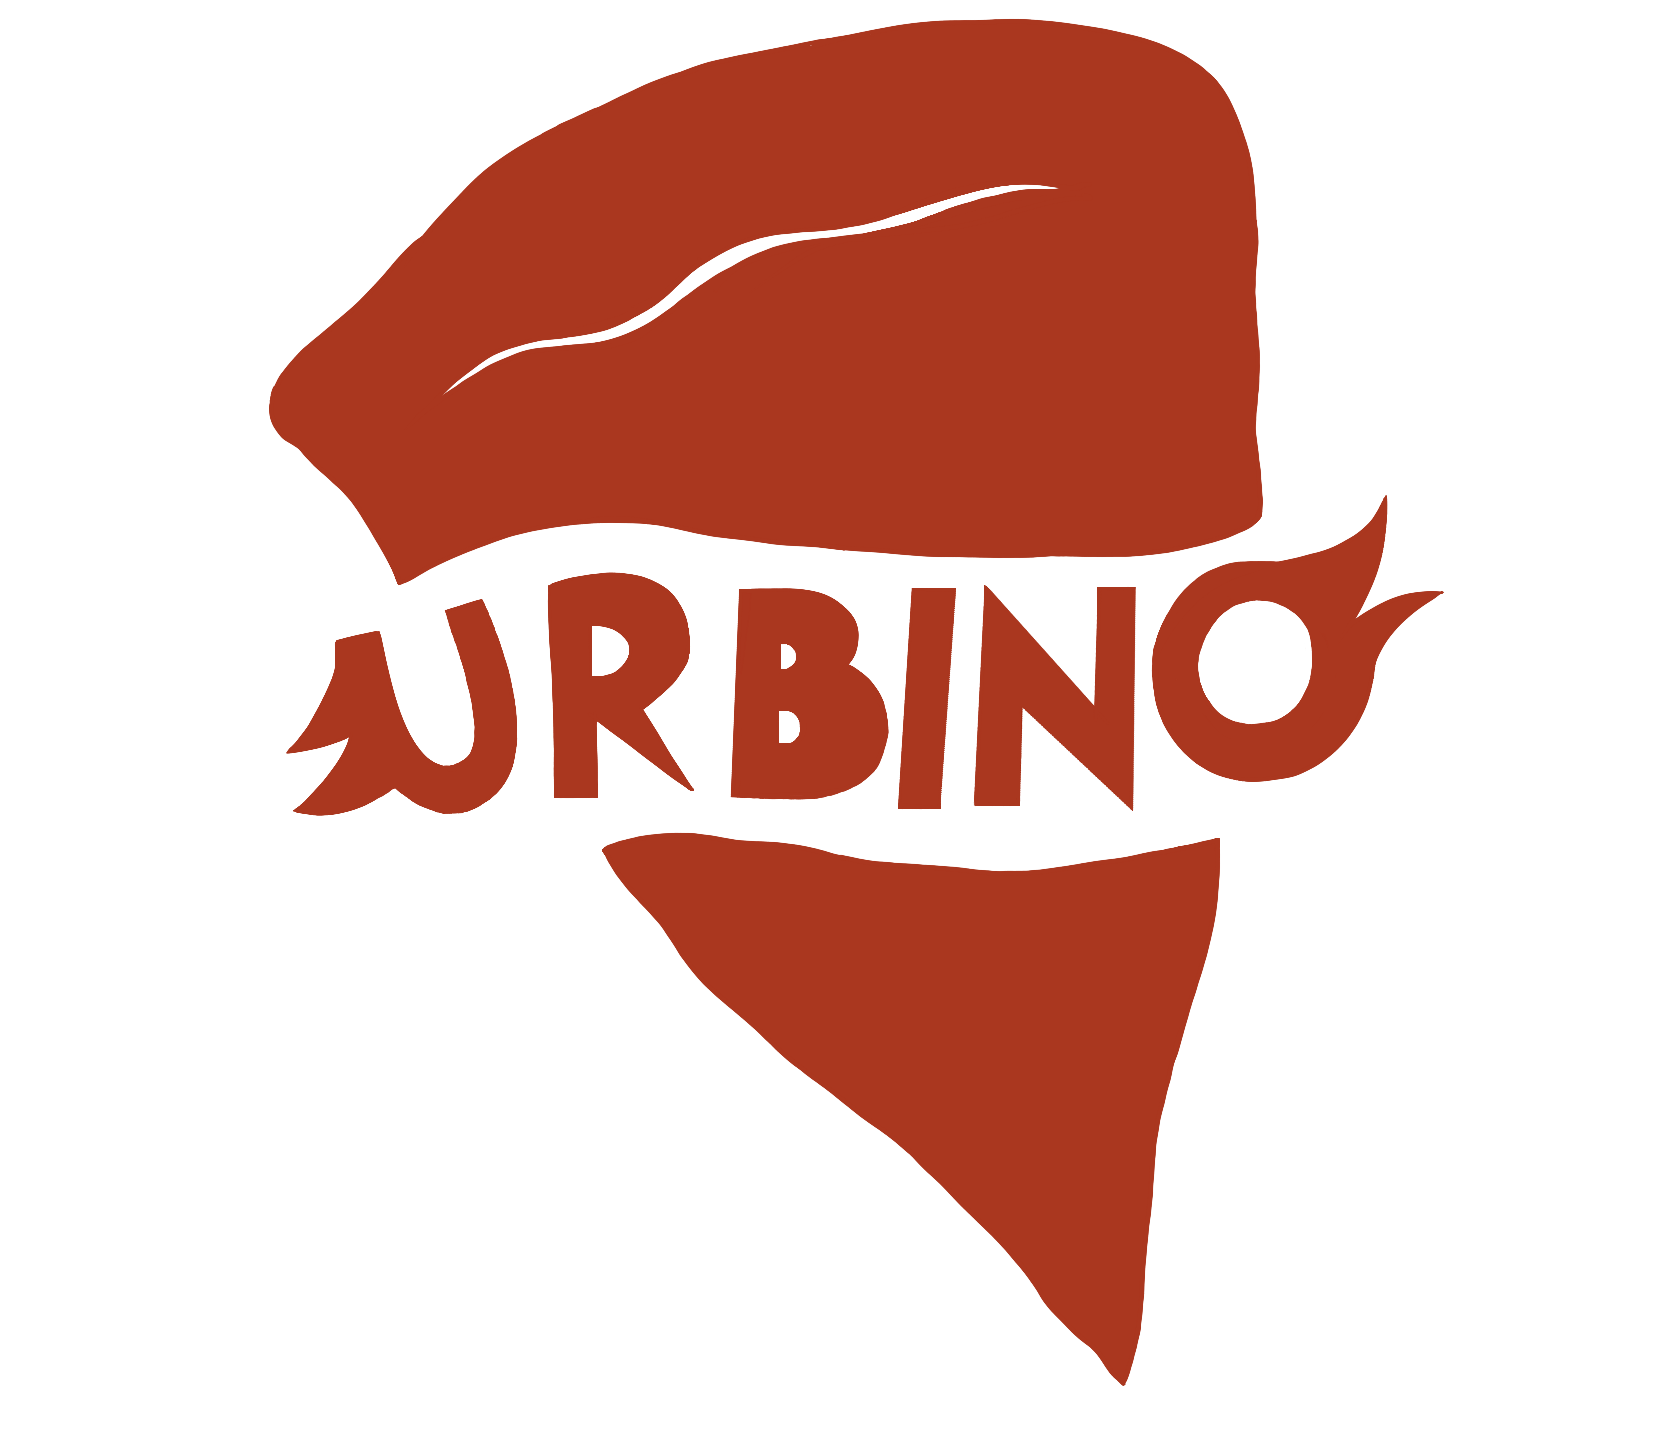 Urbino Pizza Wood Fired Neapolitan-inspired pizza catering san diego